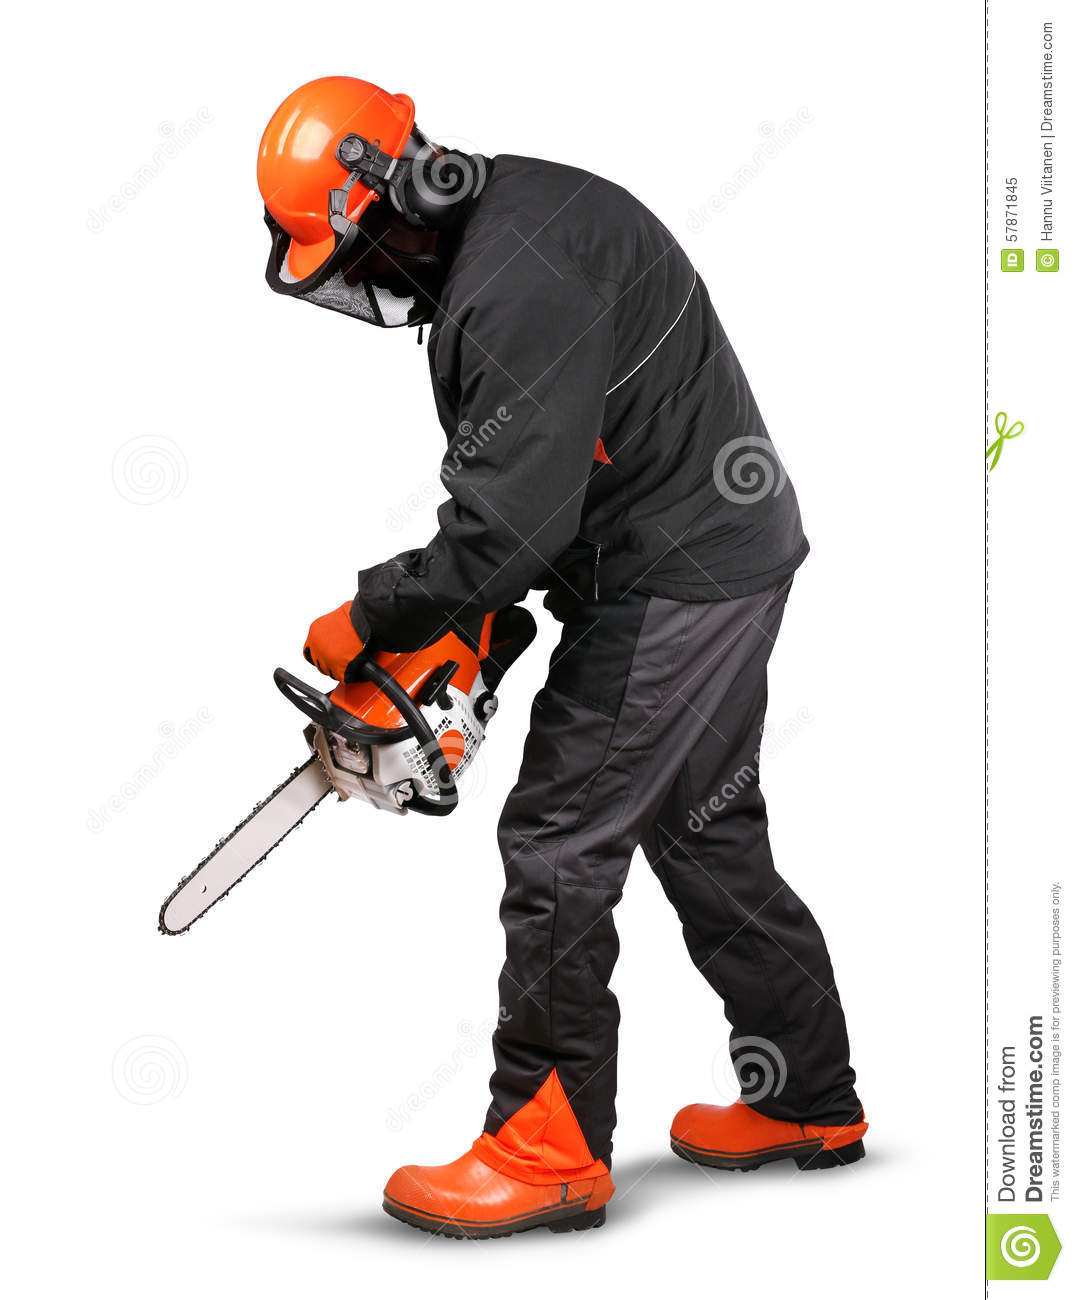 Professional Logger Safety Gear Stock Photo Image 57871845